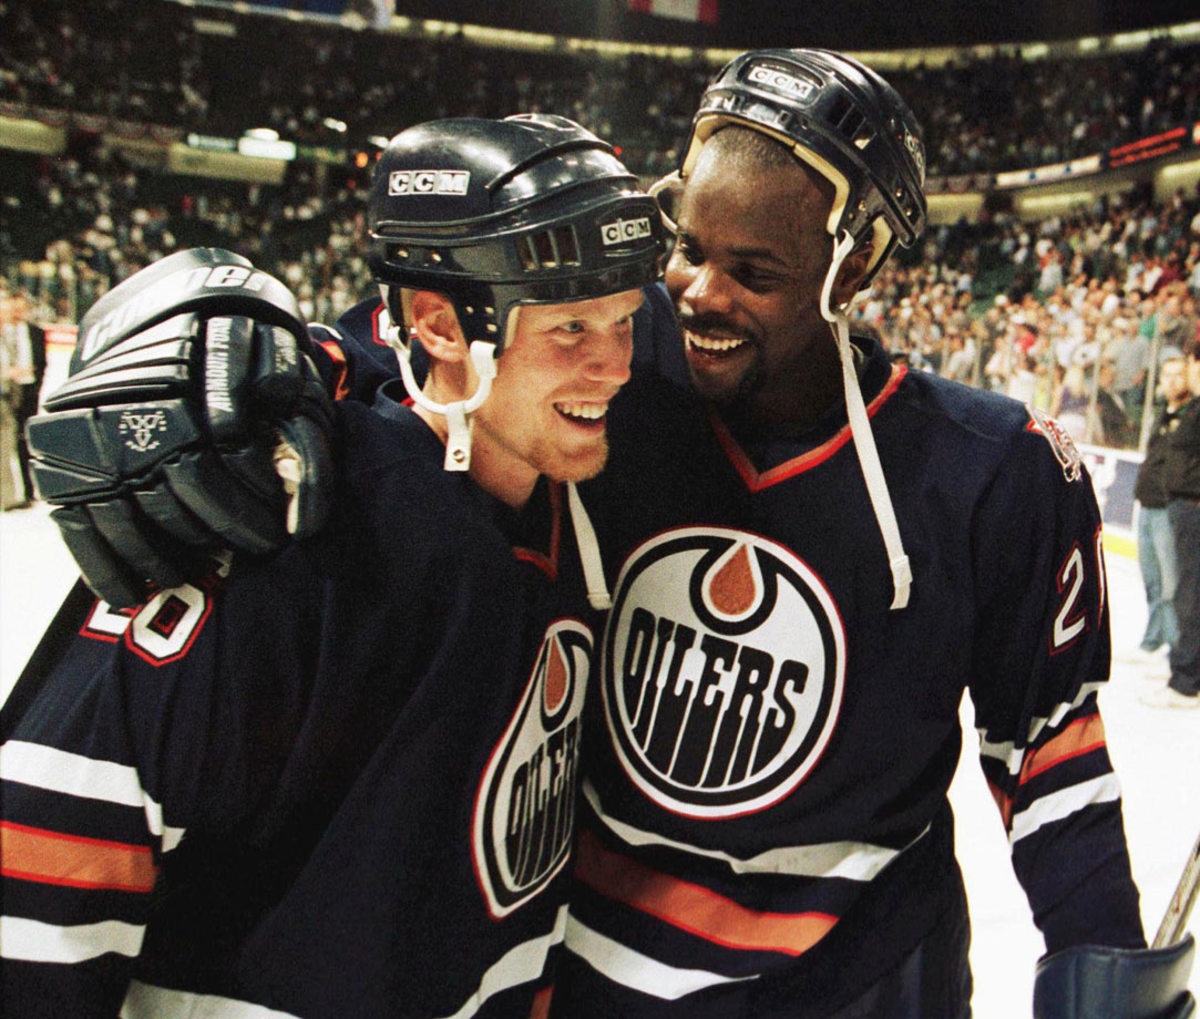 1997-Oilers-Stars-Game-7-Todd-Marchant-Mike-Grier.jpg